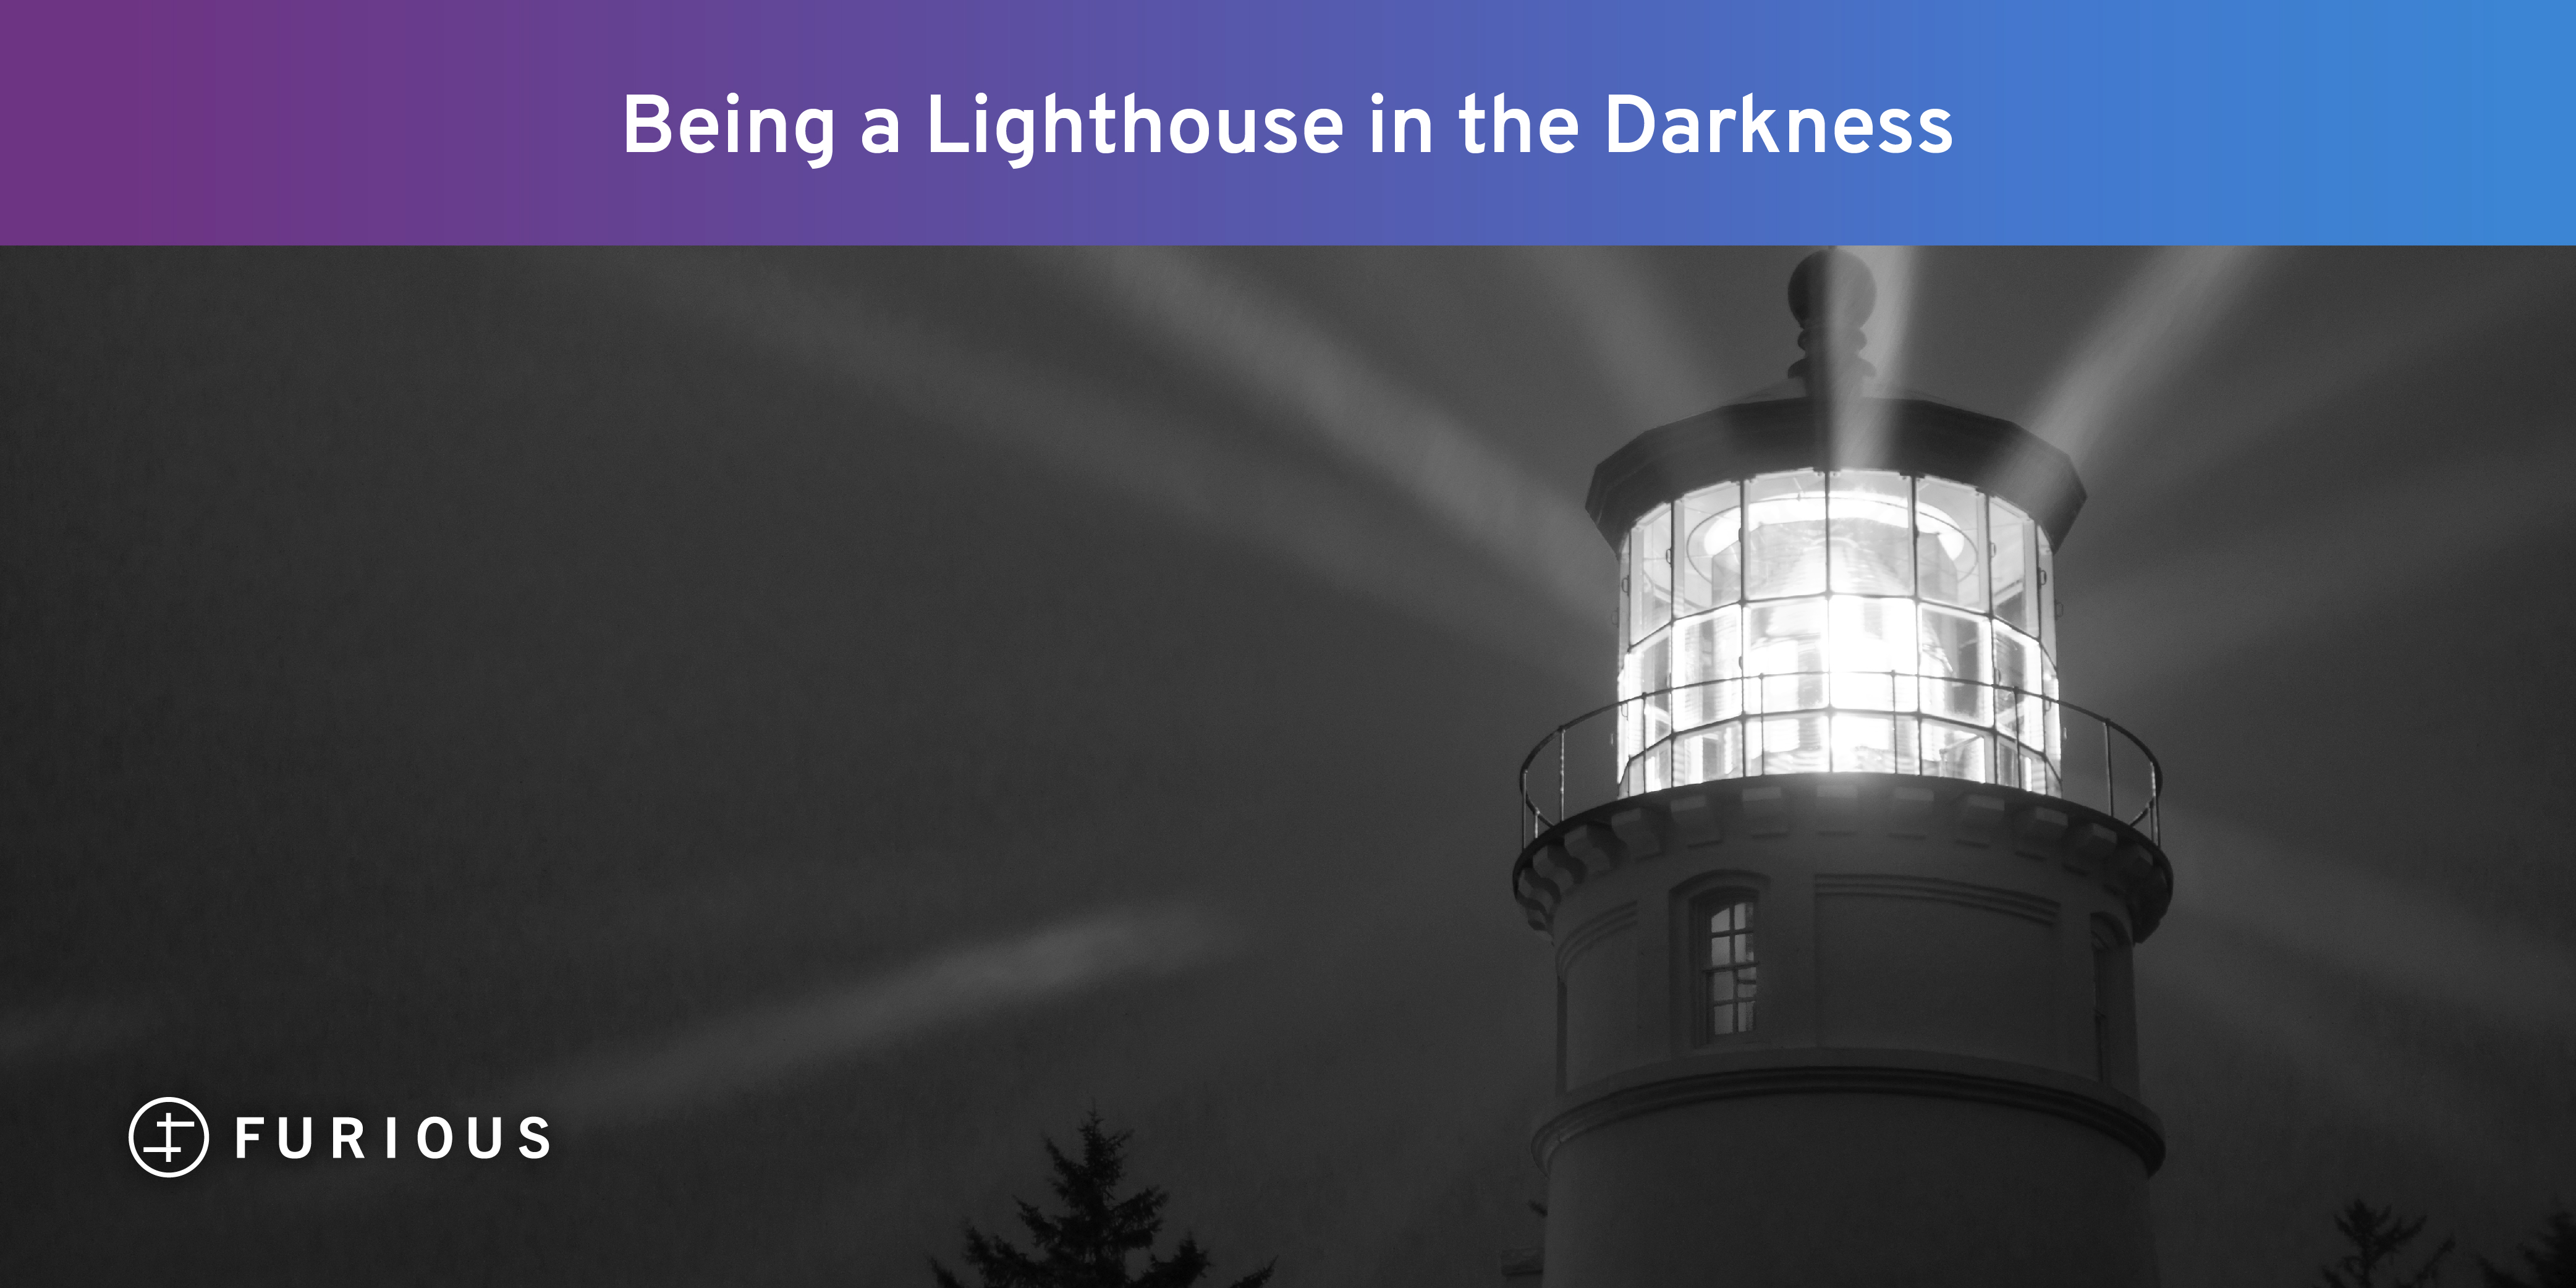 Being a Lighthouse in the Darkness